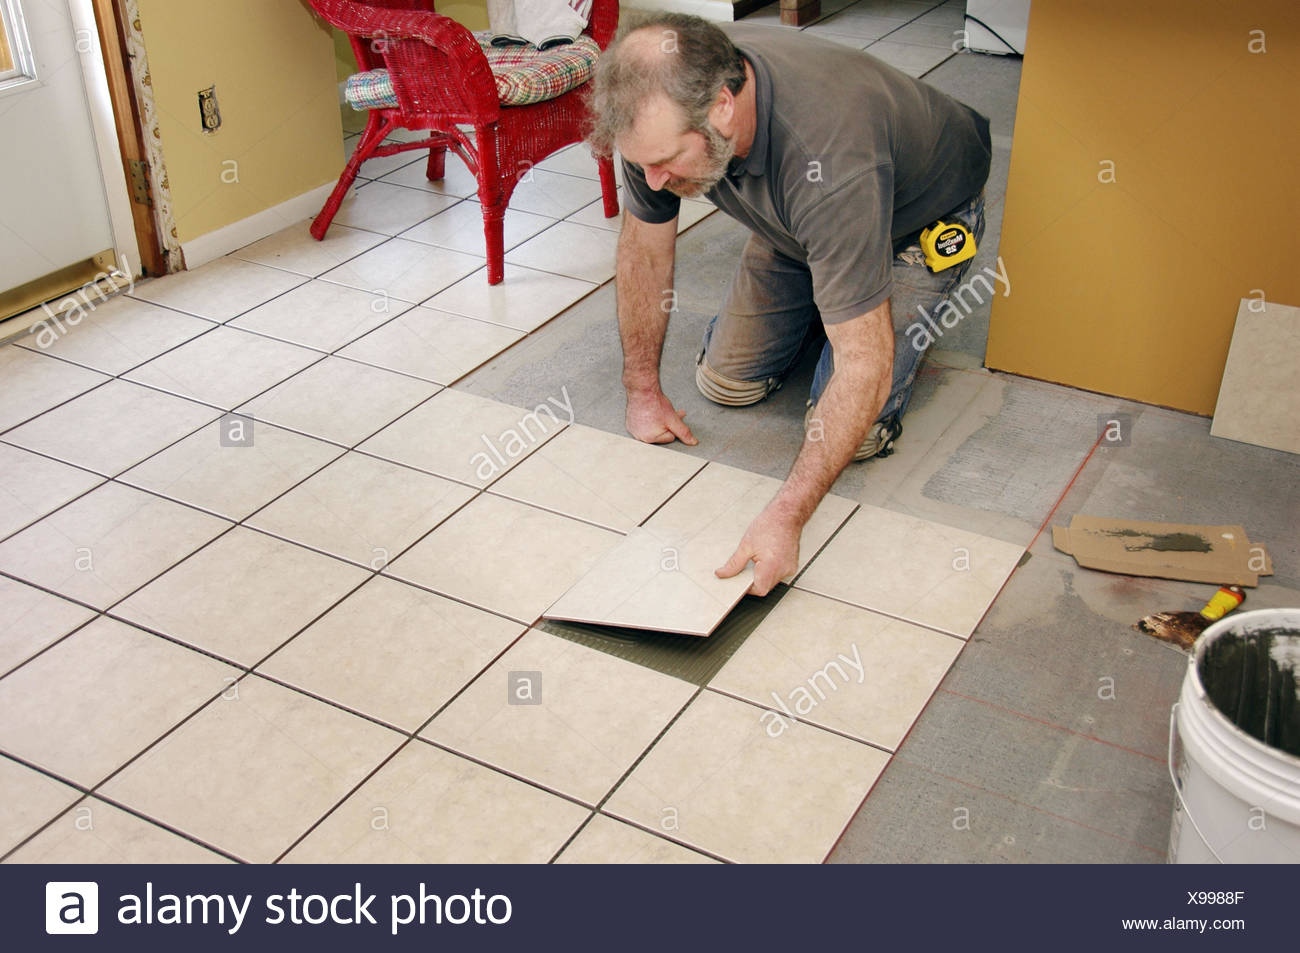 Putting Down Underflooring And Mastic And Tile On Remodeling Of